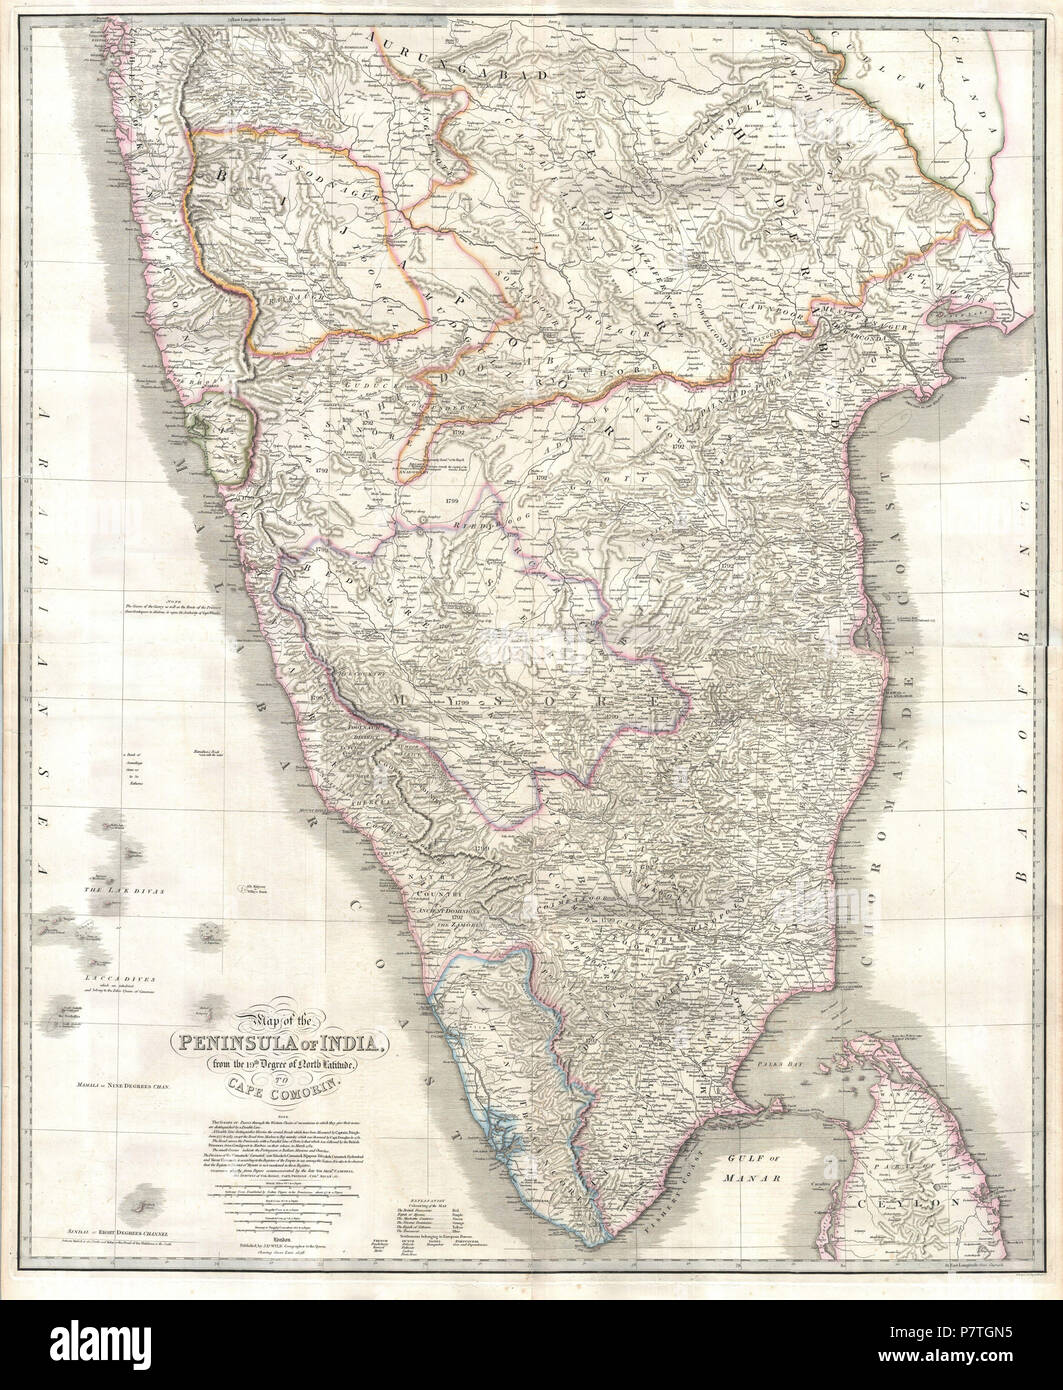 . Map of the Peninsula of India, from the 19th. Degree of North Latitude, to Cape Cormorin.. English: This stunning wall map of India, dating to 1838 is James Wyld's reissued of William Faden's important c. 1799 map of the same region. This is one of the largest and most impressive maps of India to emerge in the 19th century. This chart depicts the subcontinent from Bombay ( Mumbai ) and Aurangabad, south including the northern half of Sri Lanka (Ceylon). Though largely based on the 18th century mapmaking work of James Rennell, Wyld has significantly updated the Faden's cartographic representa - Stock Image